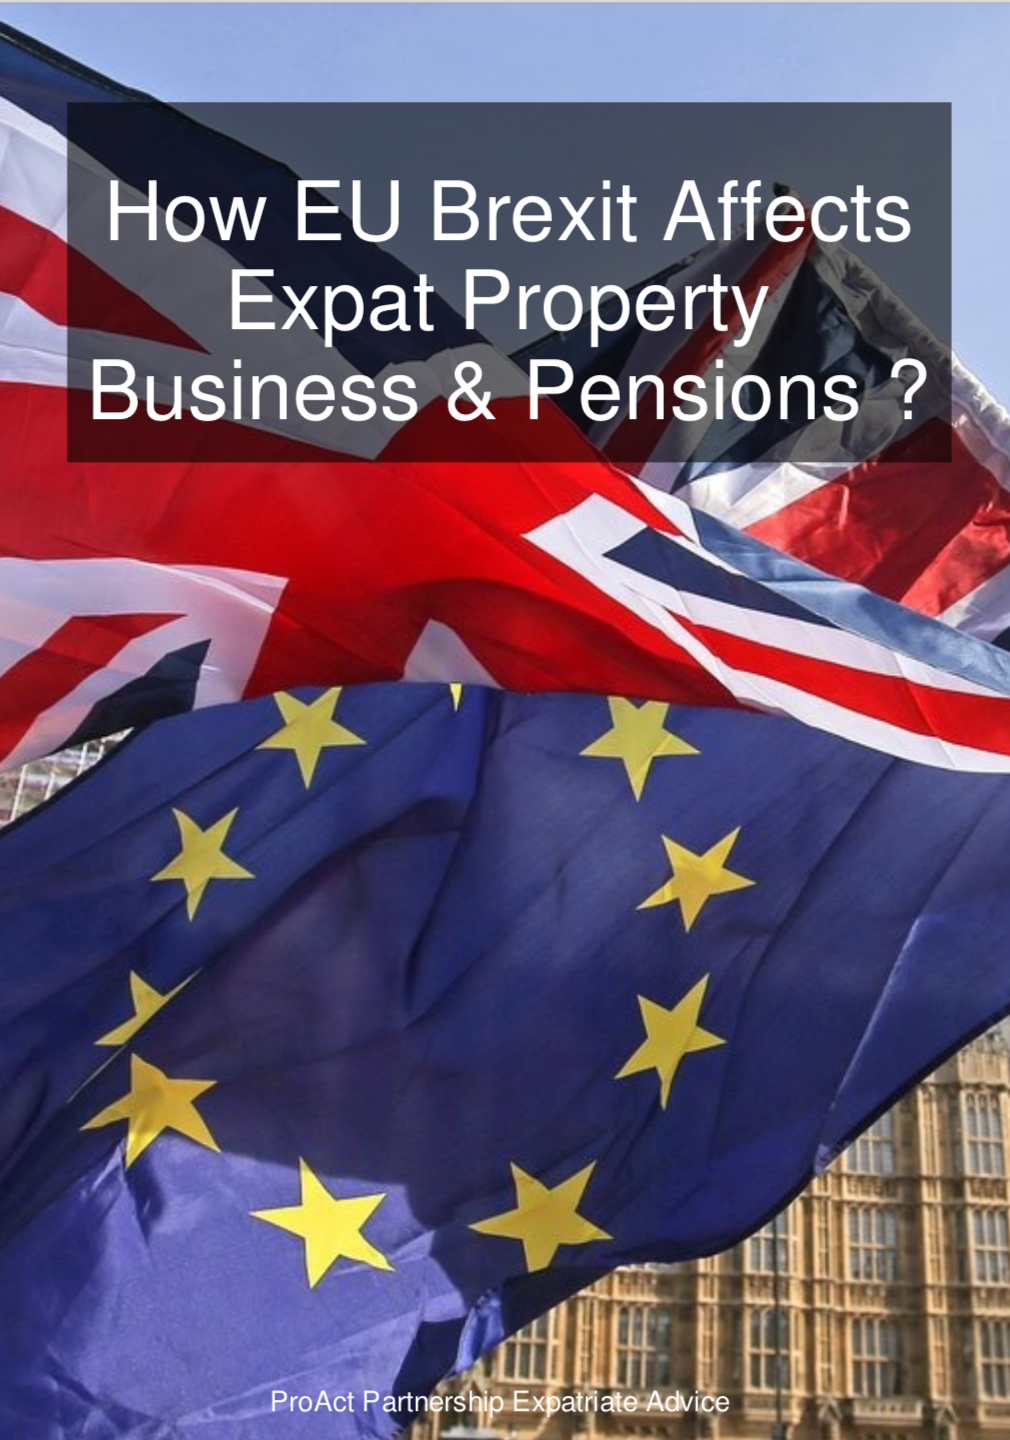 - If you enjoyed the the vlog and podcast you can get your brand new guide for only £4.99: How EU Brexit Affects Expat Property, Business & Pensions, where ProACT Sam goes dives deeper to help you navigate the choppy Brexit waters ahead.